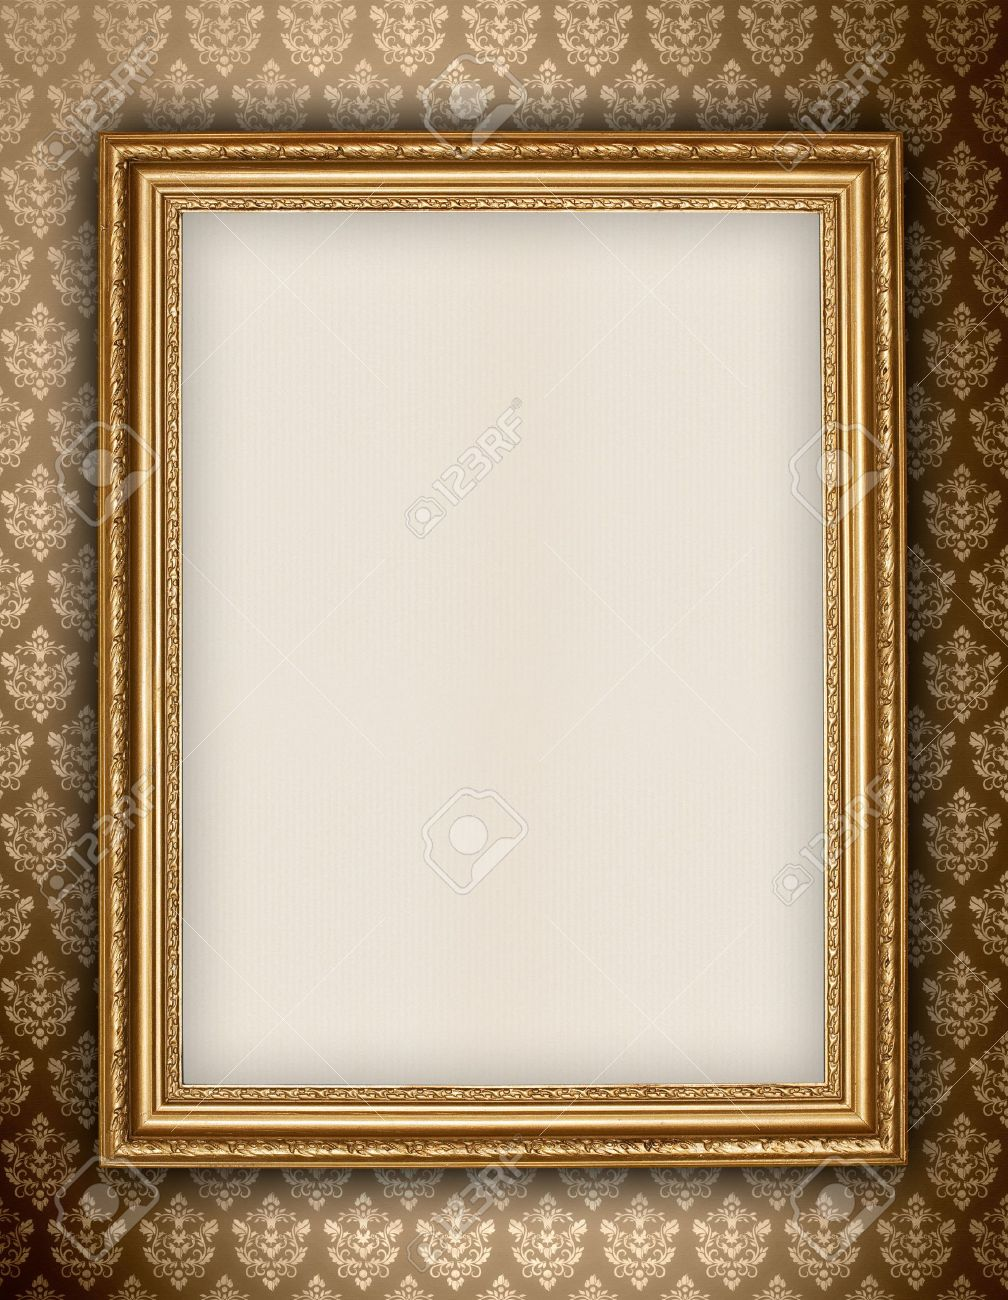 Golden frame on wallpaper background stock photo picture and golden frame on wallpaper background stock photo 10676691 voltagebd Image collections